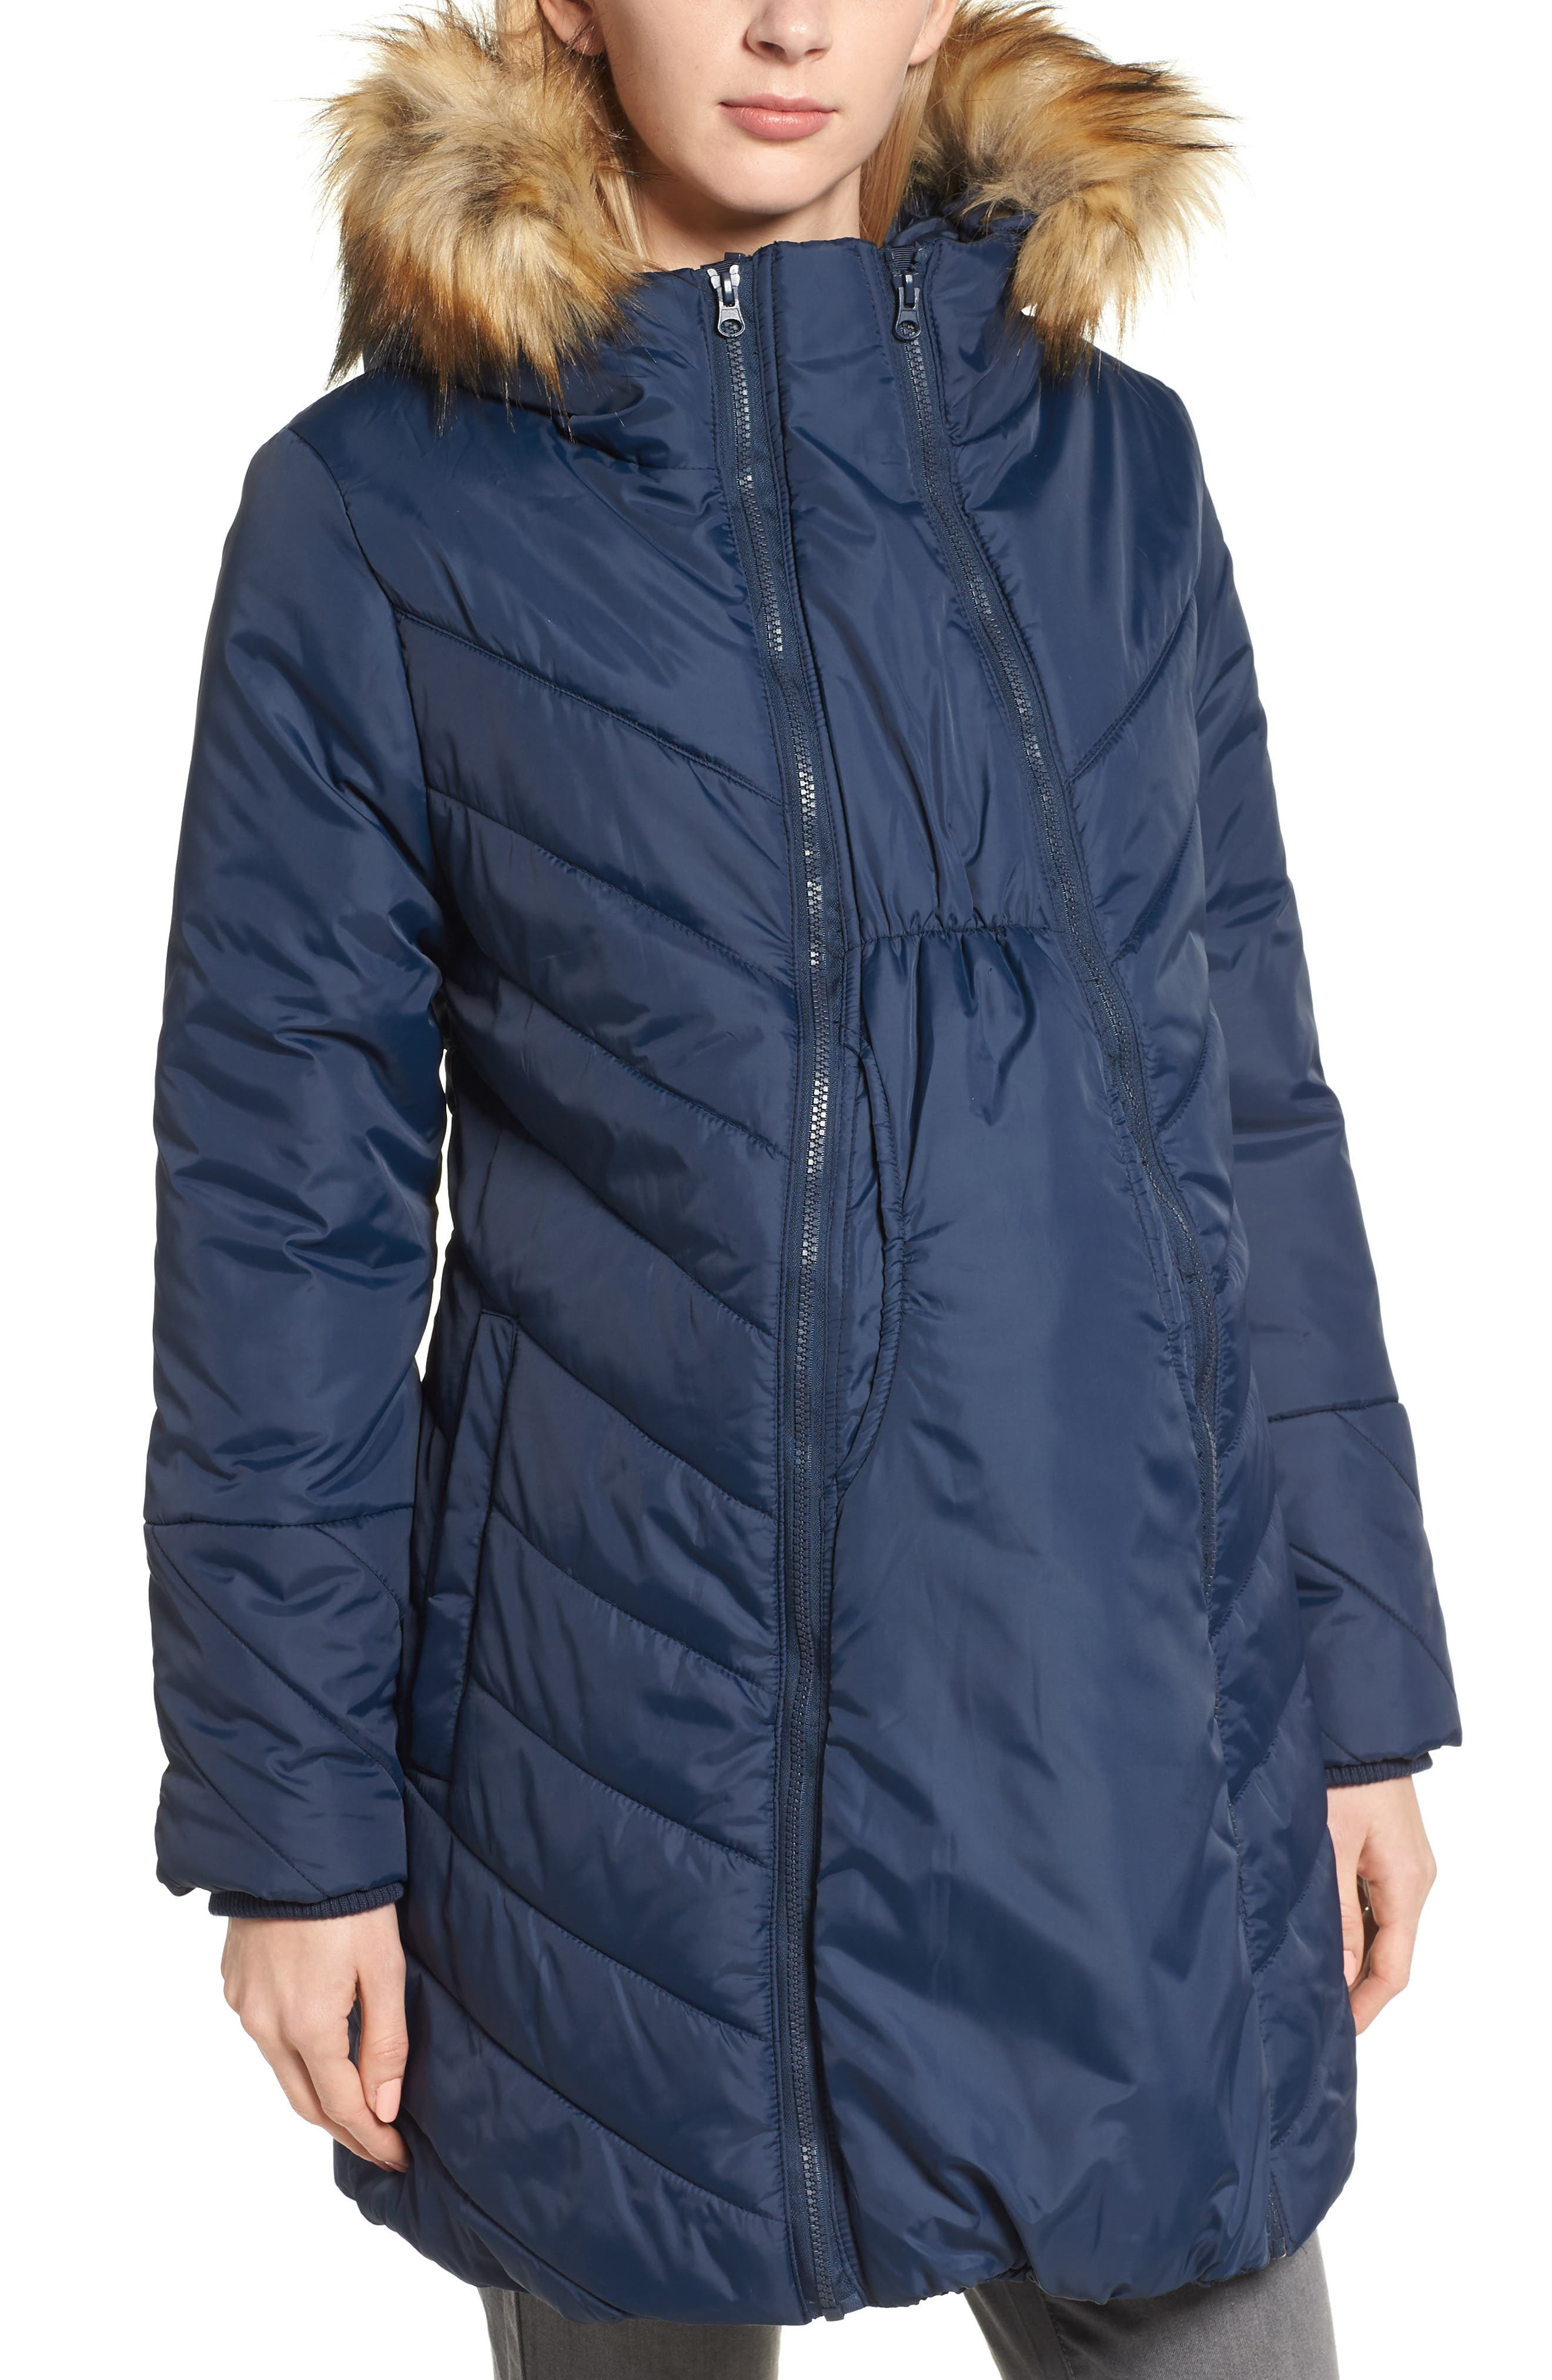 Faux Fur Trim Convertible Puffer 3-in-1 Maternity Jacket,                         Main,                         color, Navy